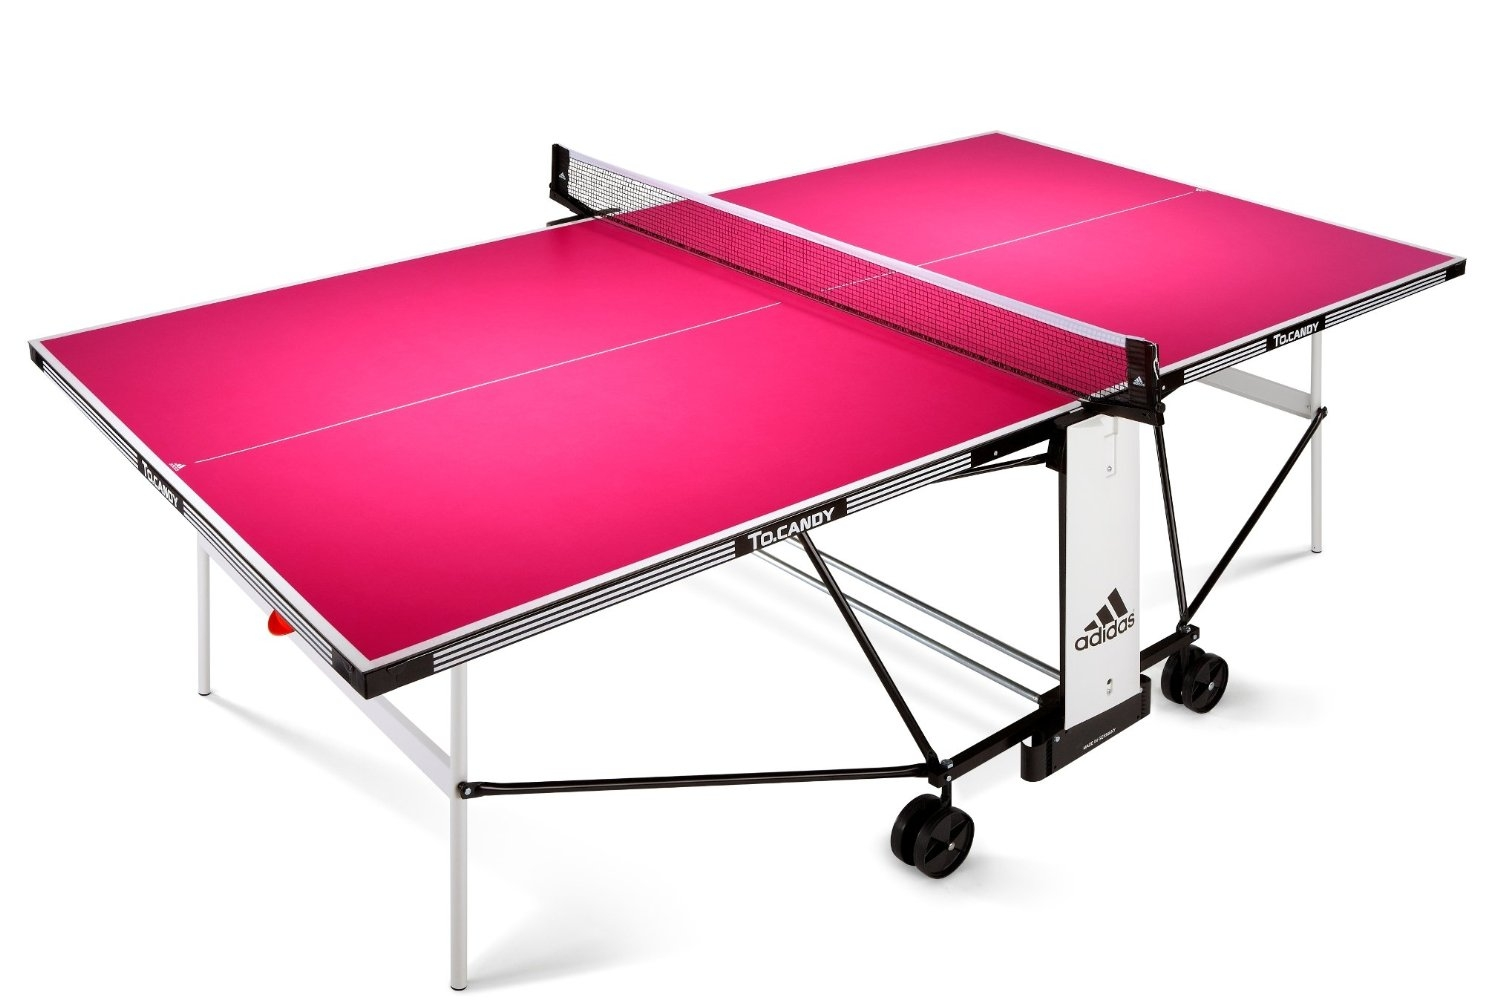 Les tendances table de ping pong d 39 ext rieur adidas to candy for Table exterieur de couleur